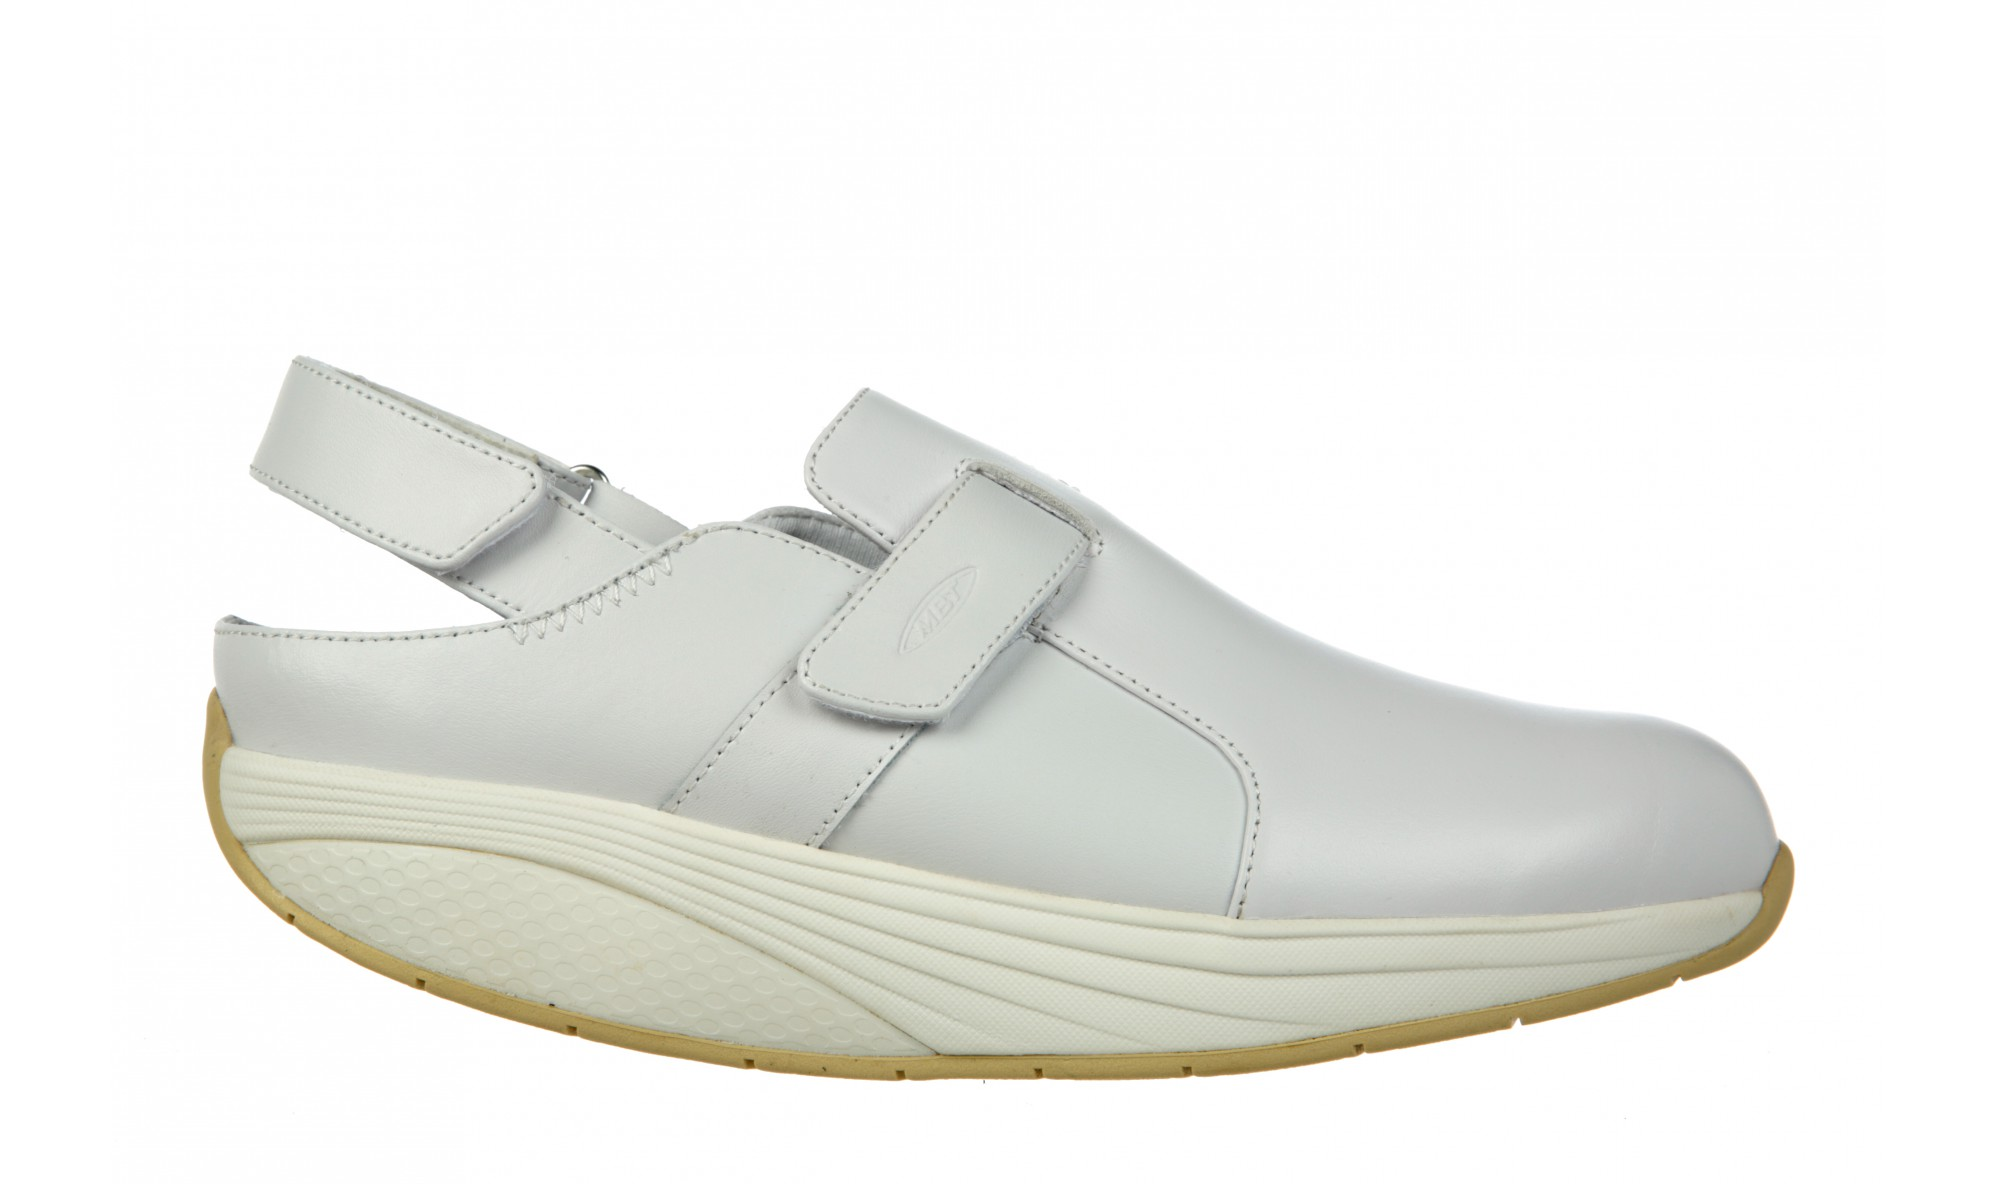 MBT Flua Clog - Men's - White